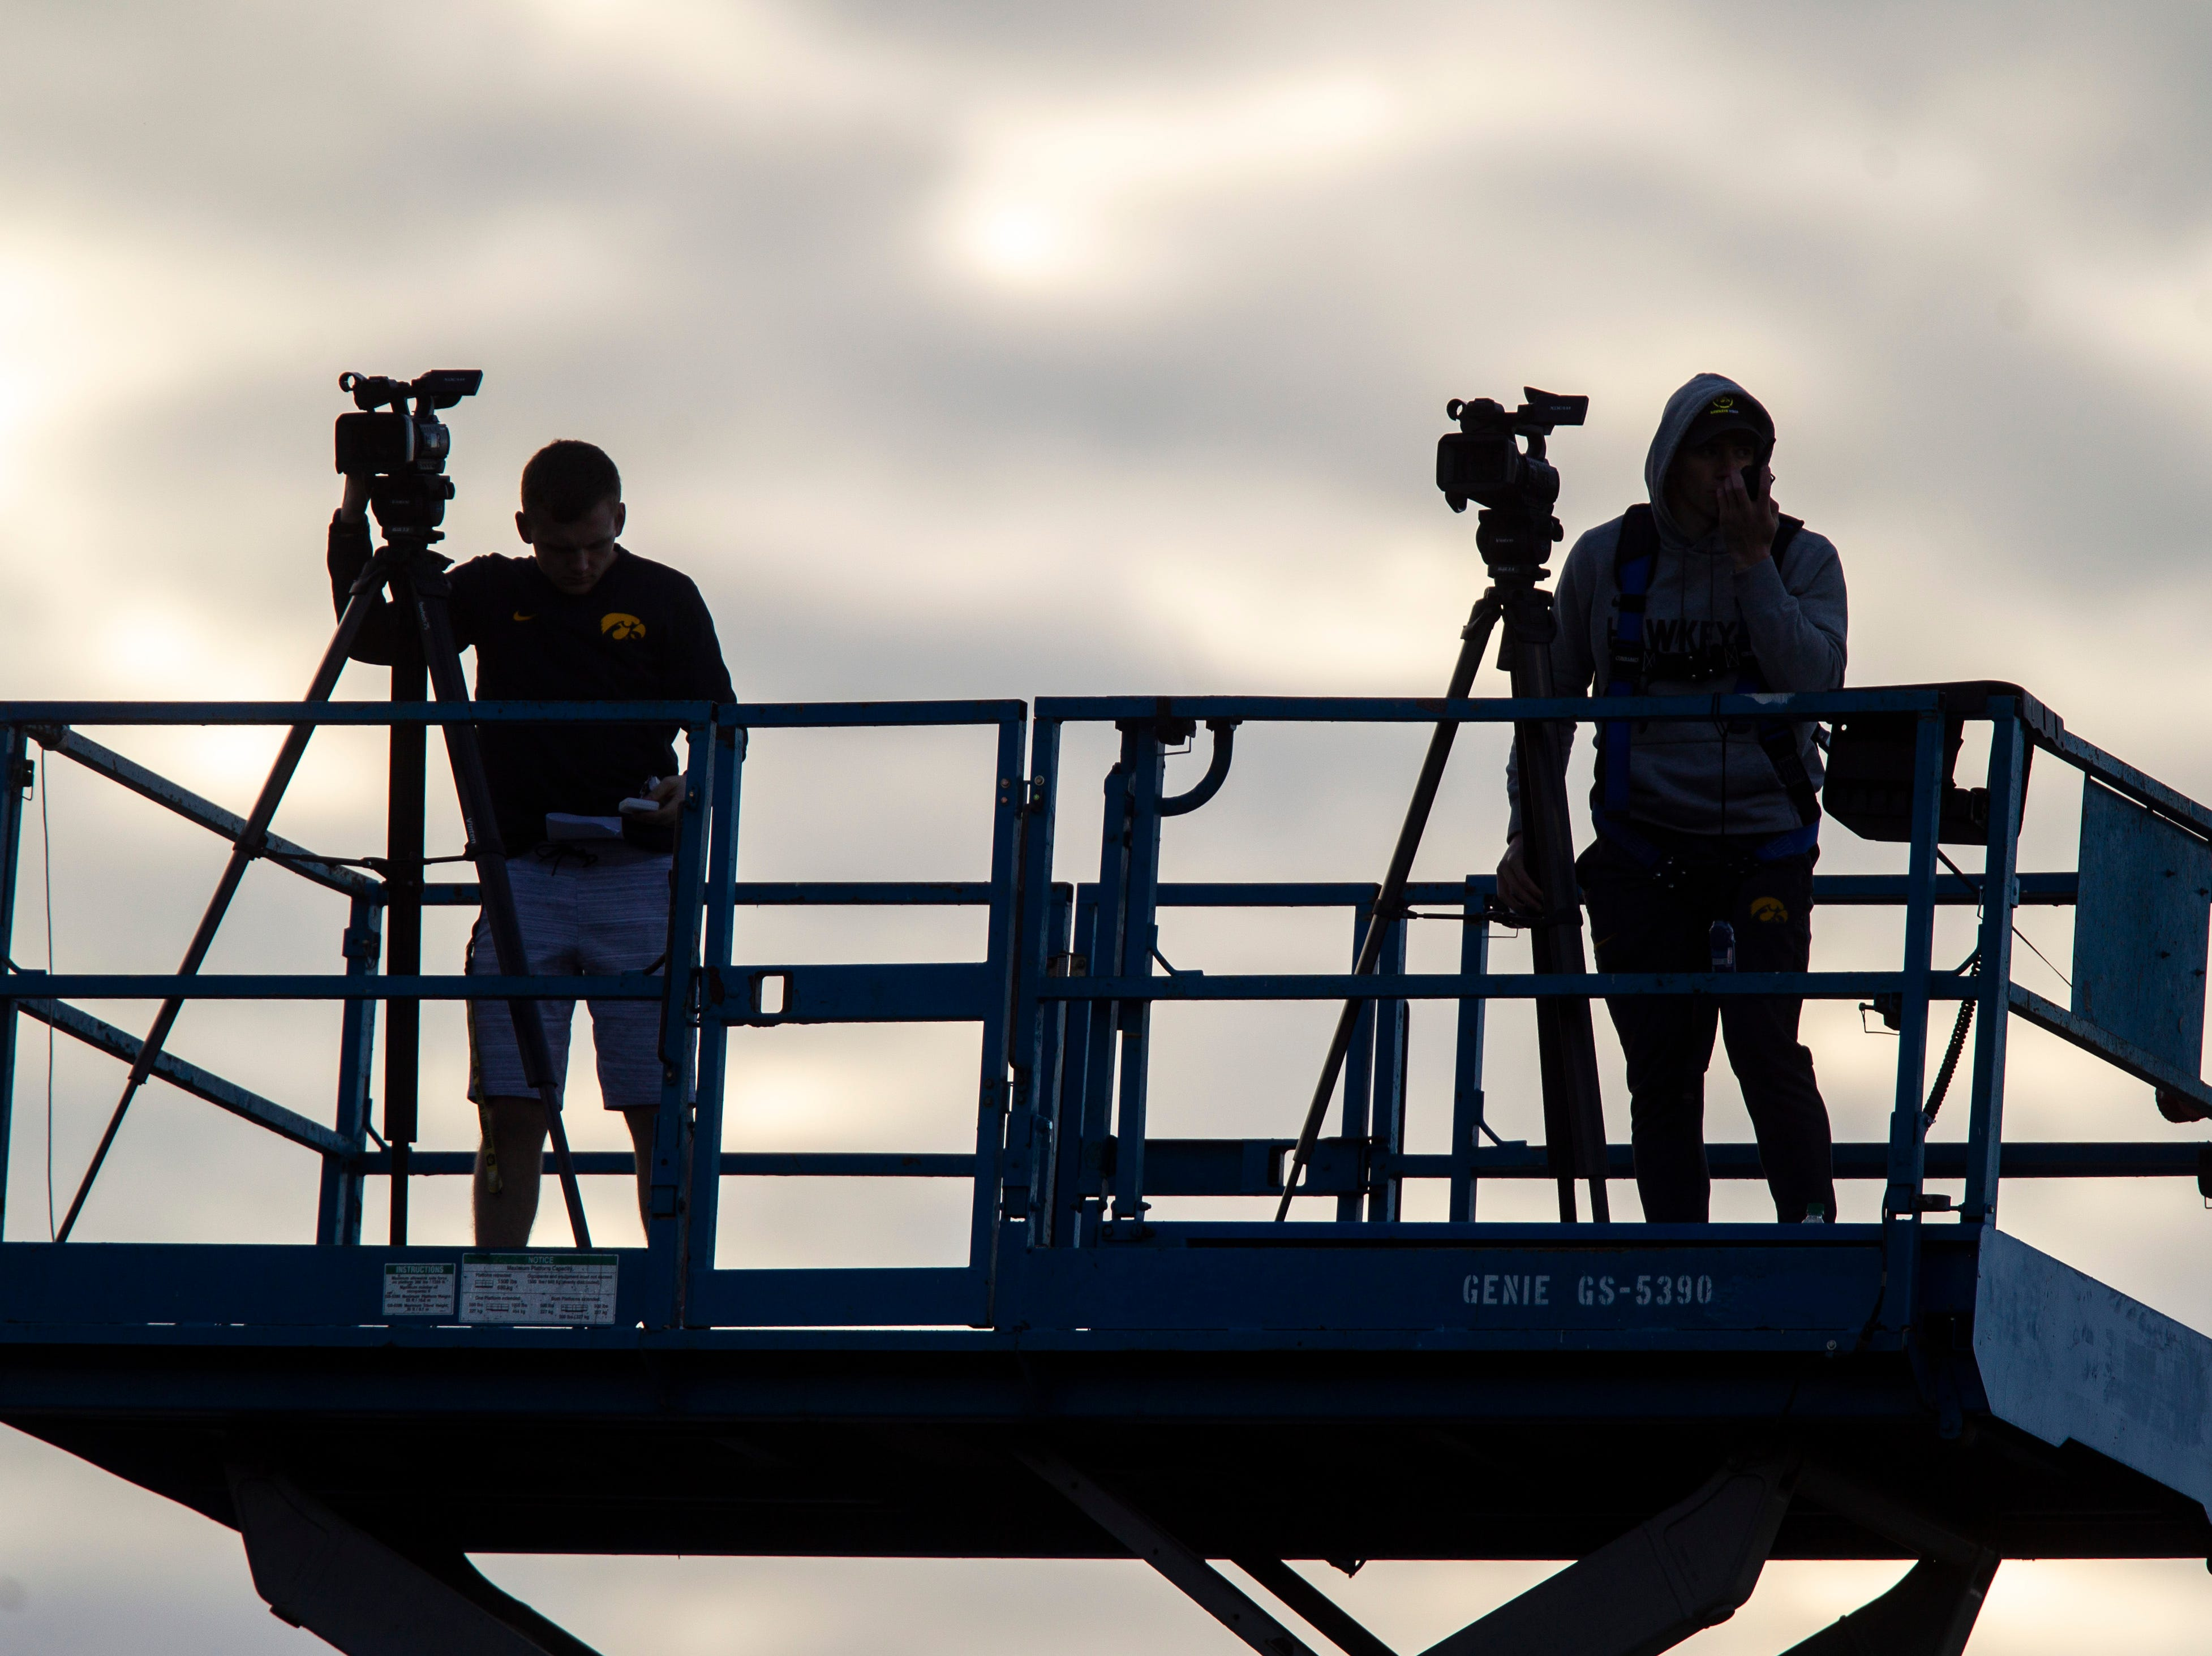 Iowa staff film play from a scissor lift during the final spring football practice, Friday, April 26, 2019, at the University of Iowa outdoor practice facility in Iowa City, Iowa.